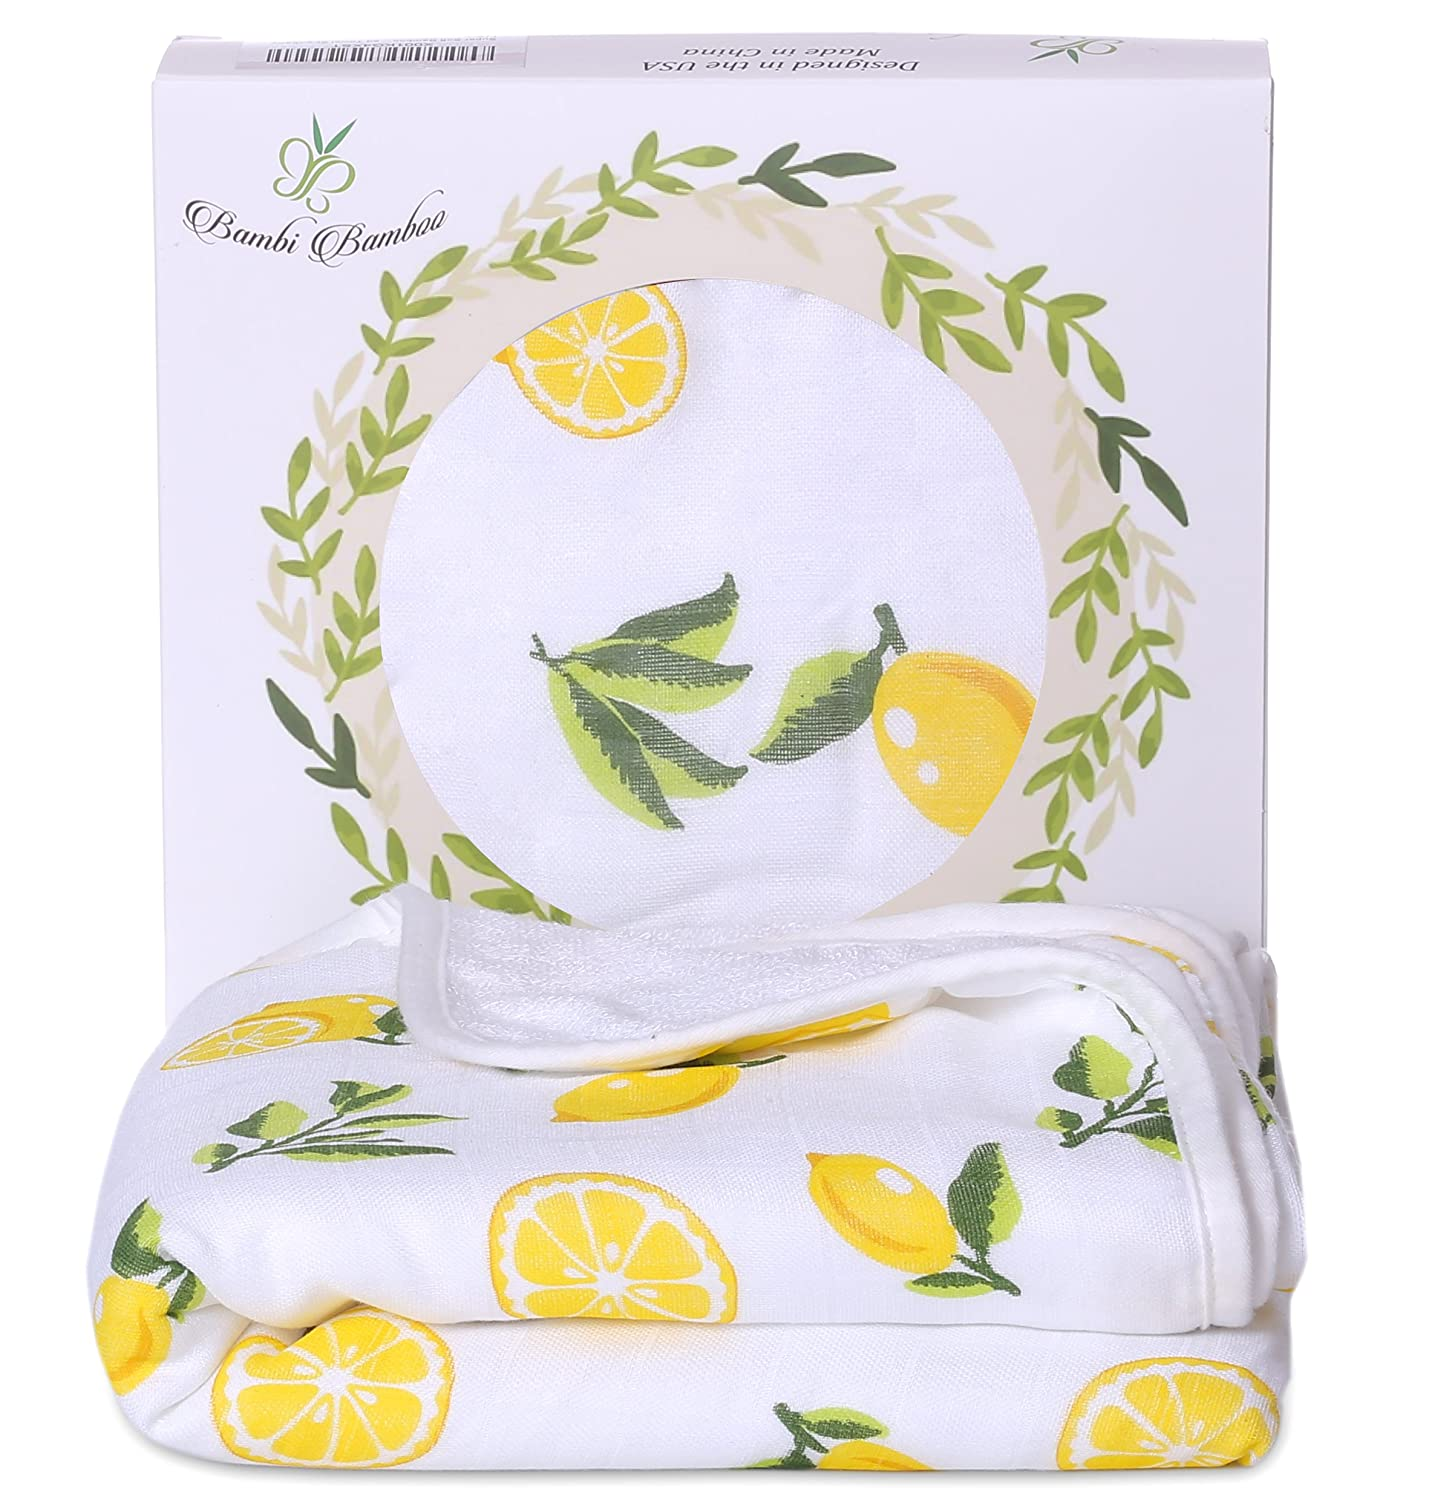 Bambi Bamboo Hooded Baby Bath Towel - Luxury Spa Super Soft for Sensitive Skin - Lemon, 2 Layers, Reversible - Absorbent, Keep Dry& Warm-Antibacterial,Hypoallergenic-Perfect Shower Registry Gift